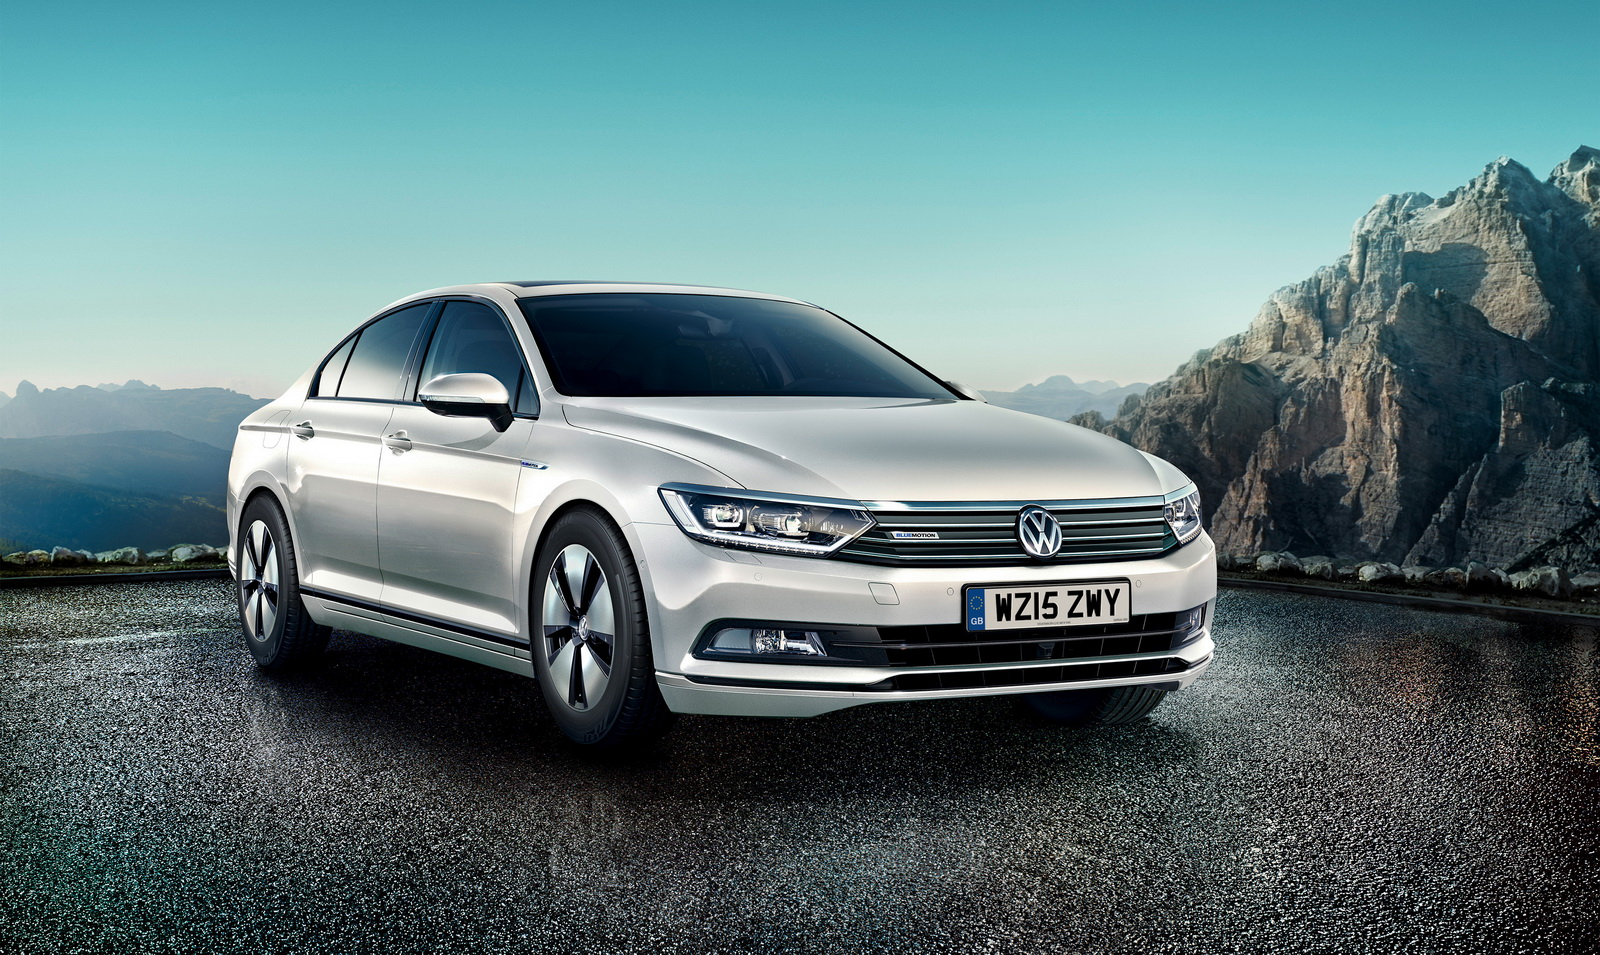 new vw passat bluemotion returns and 95g km of co2 carscoops. Black Bedroom Furniture Sets. Home Design Ideas